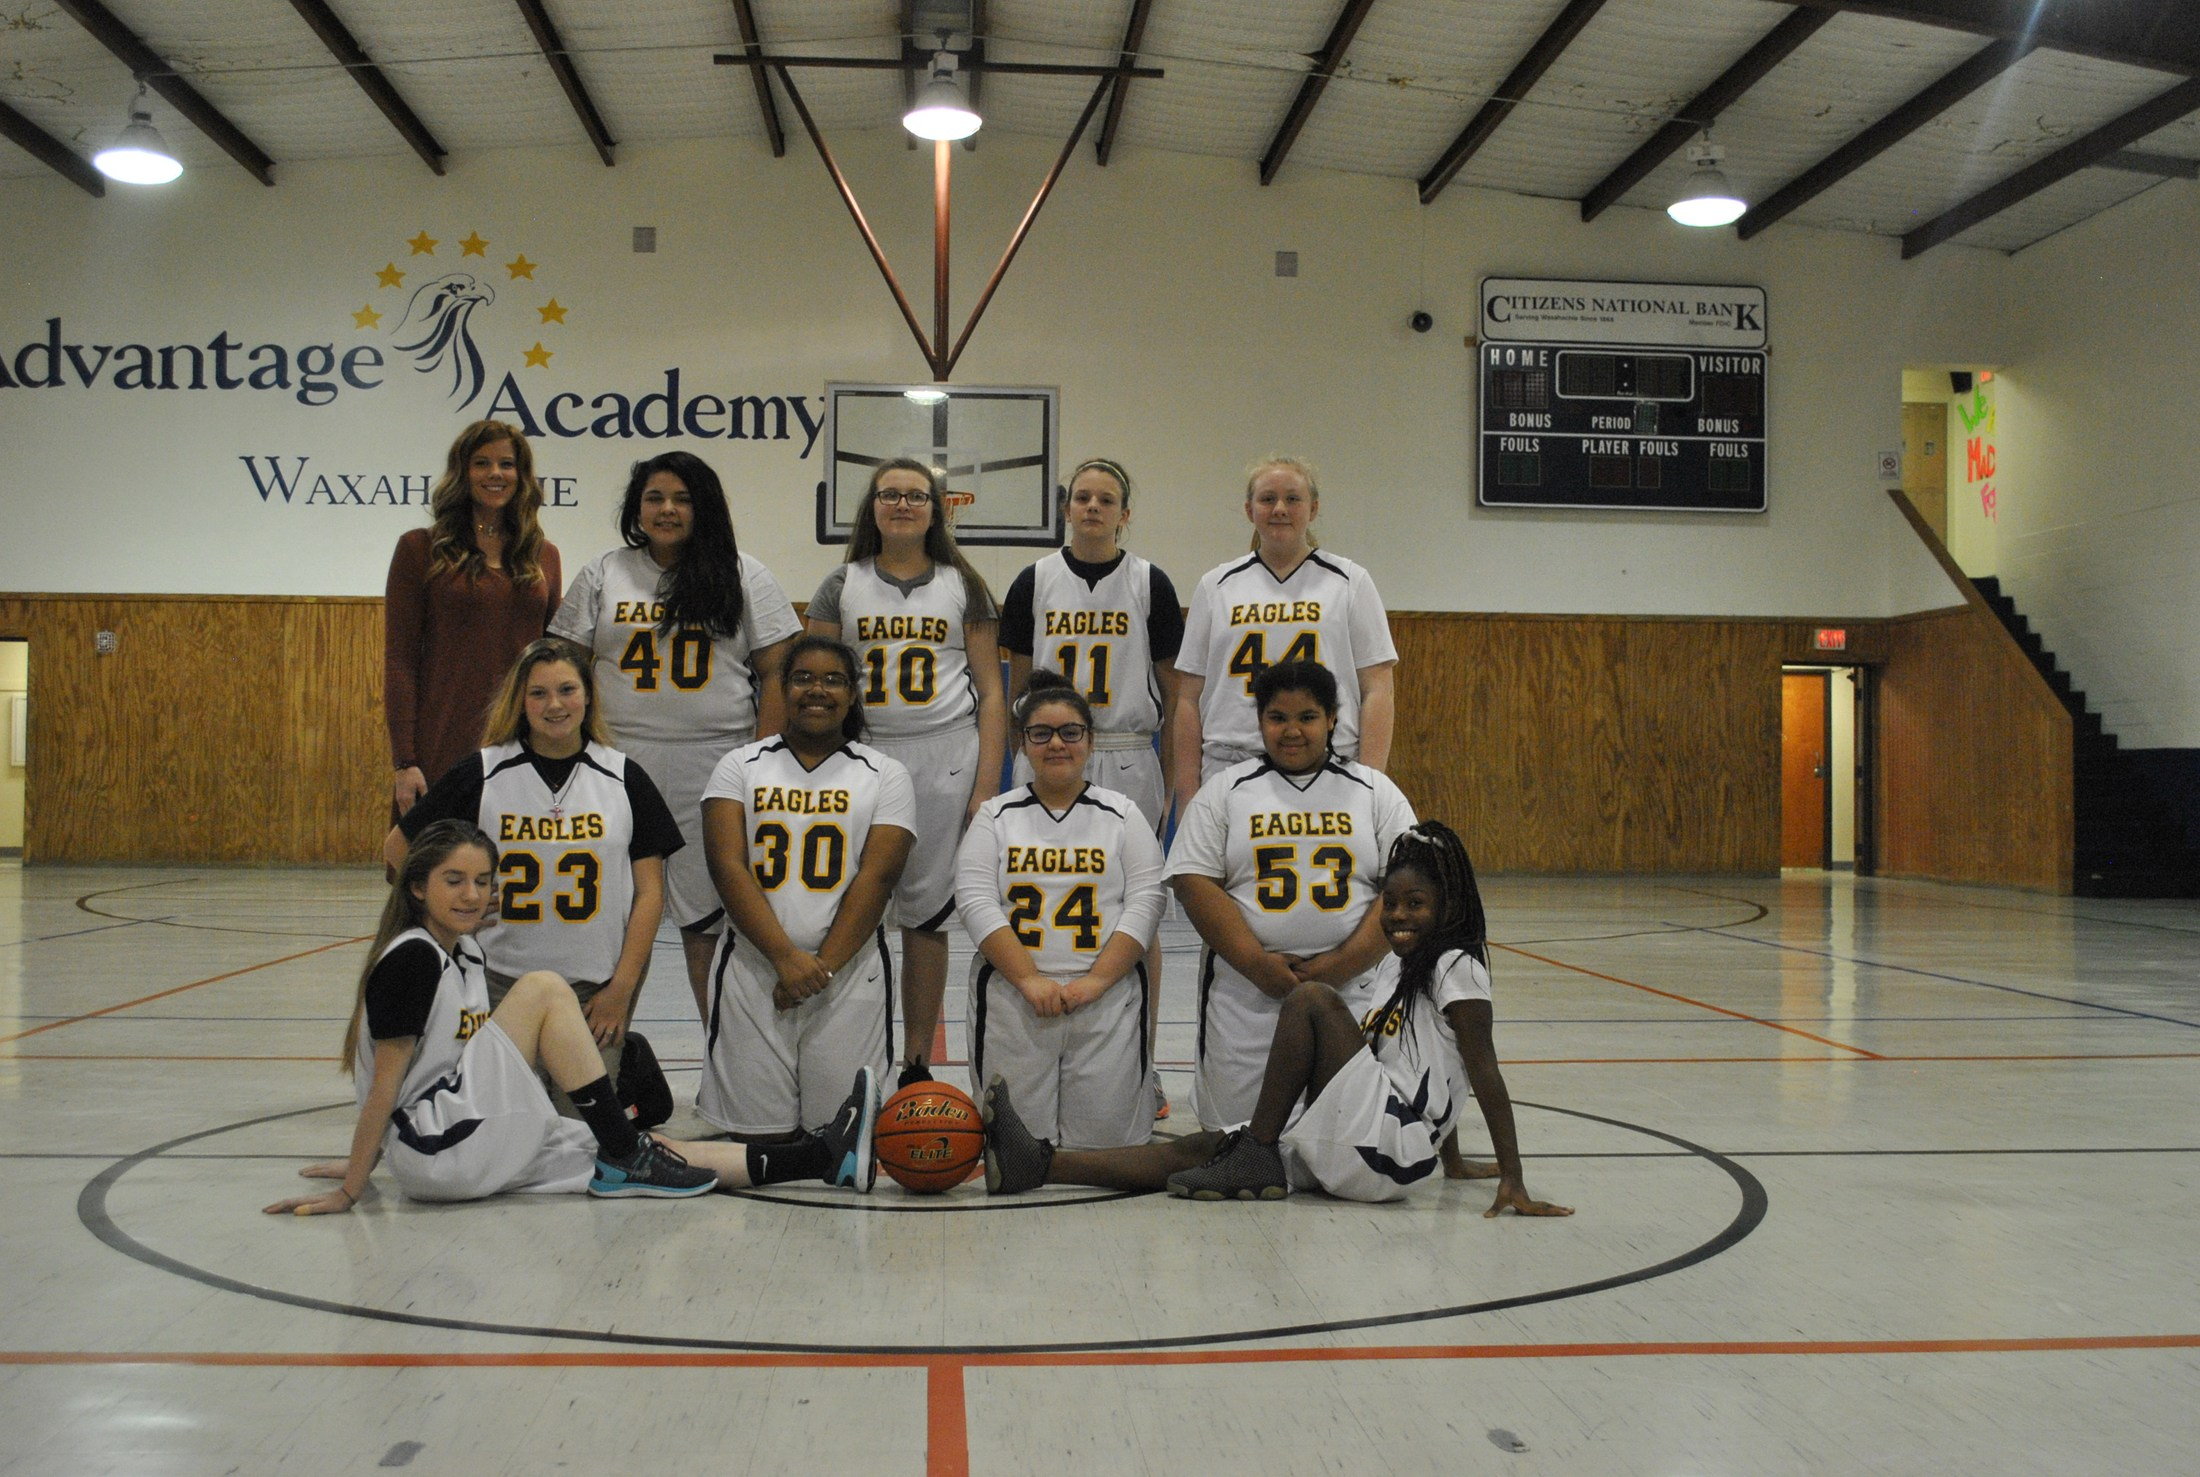 Advantage Academy Women's Basketball Team